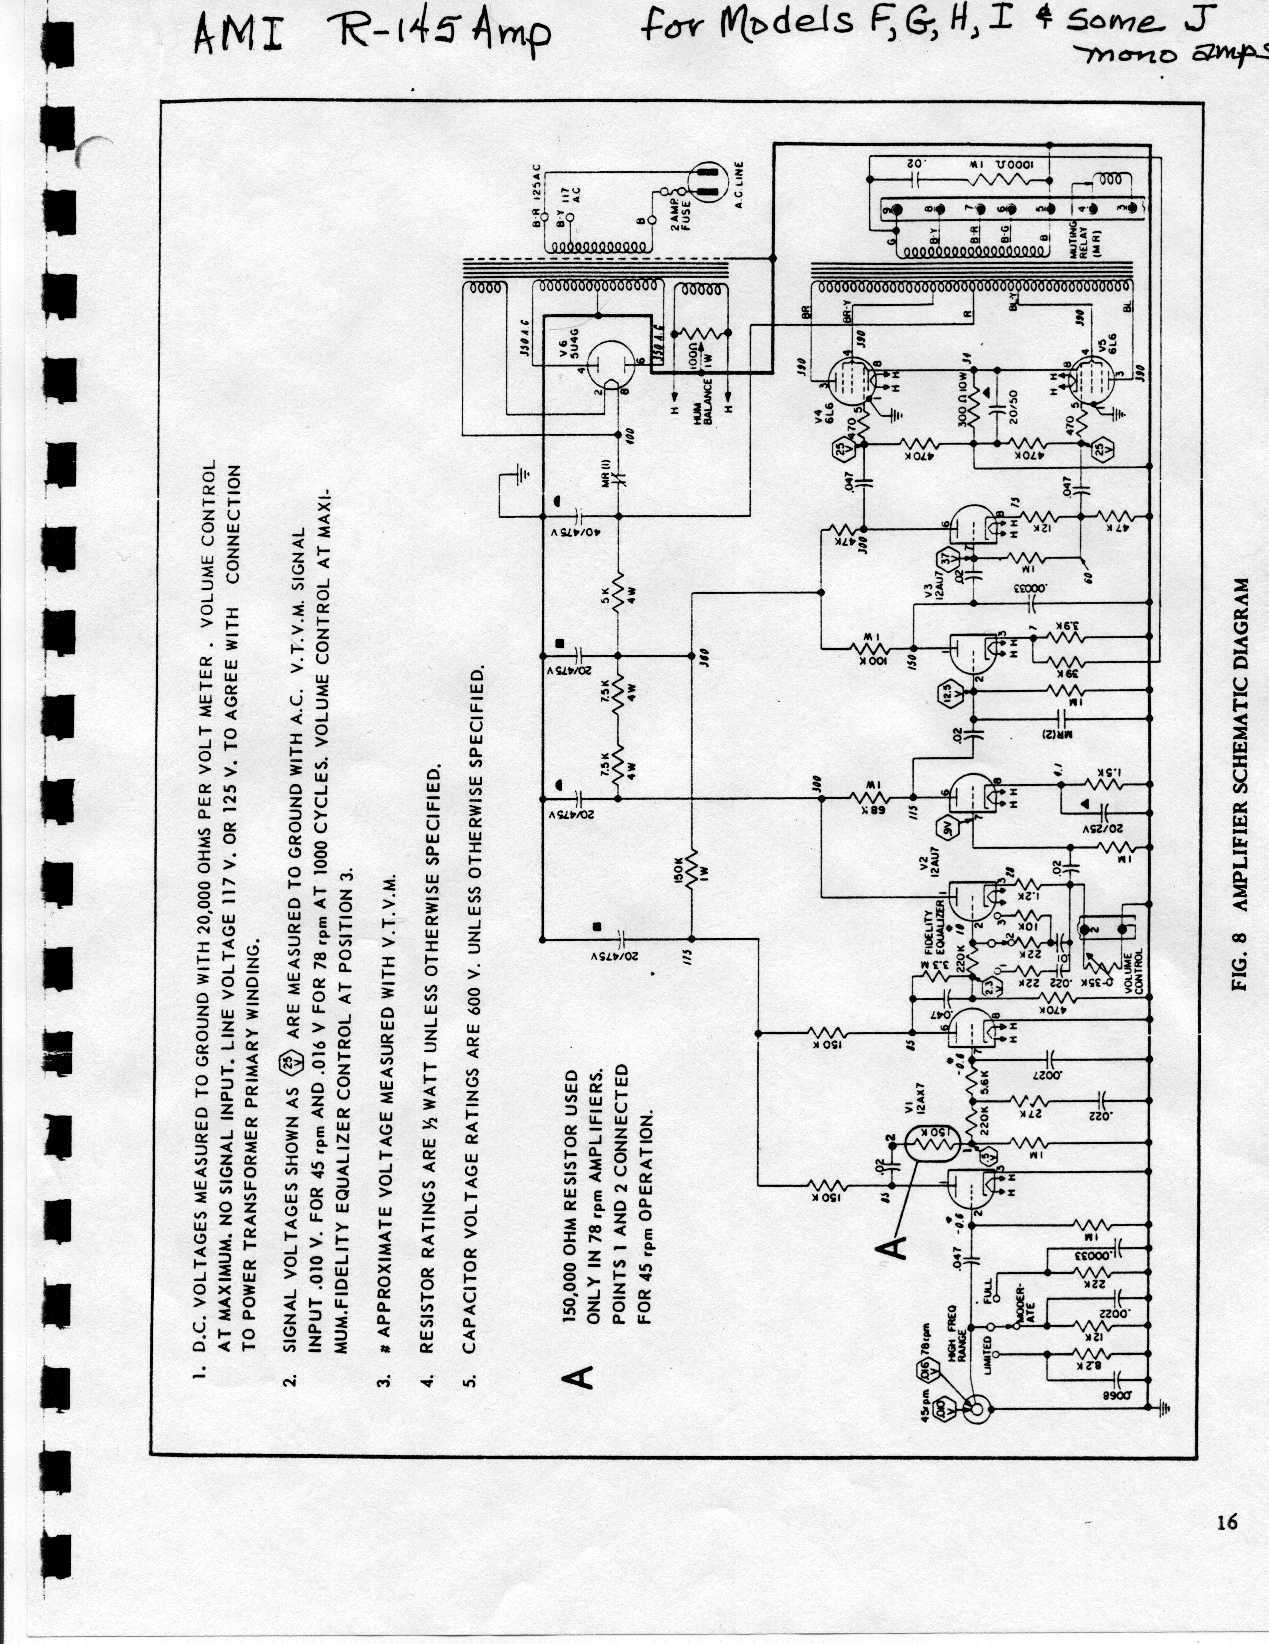 Jukebox List Schematics For Ami Amp